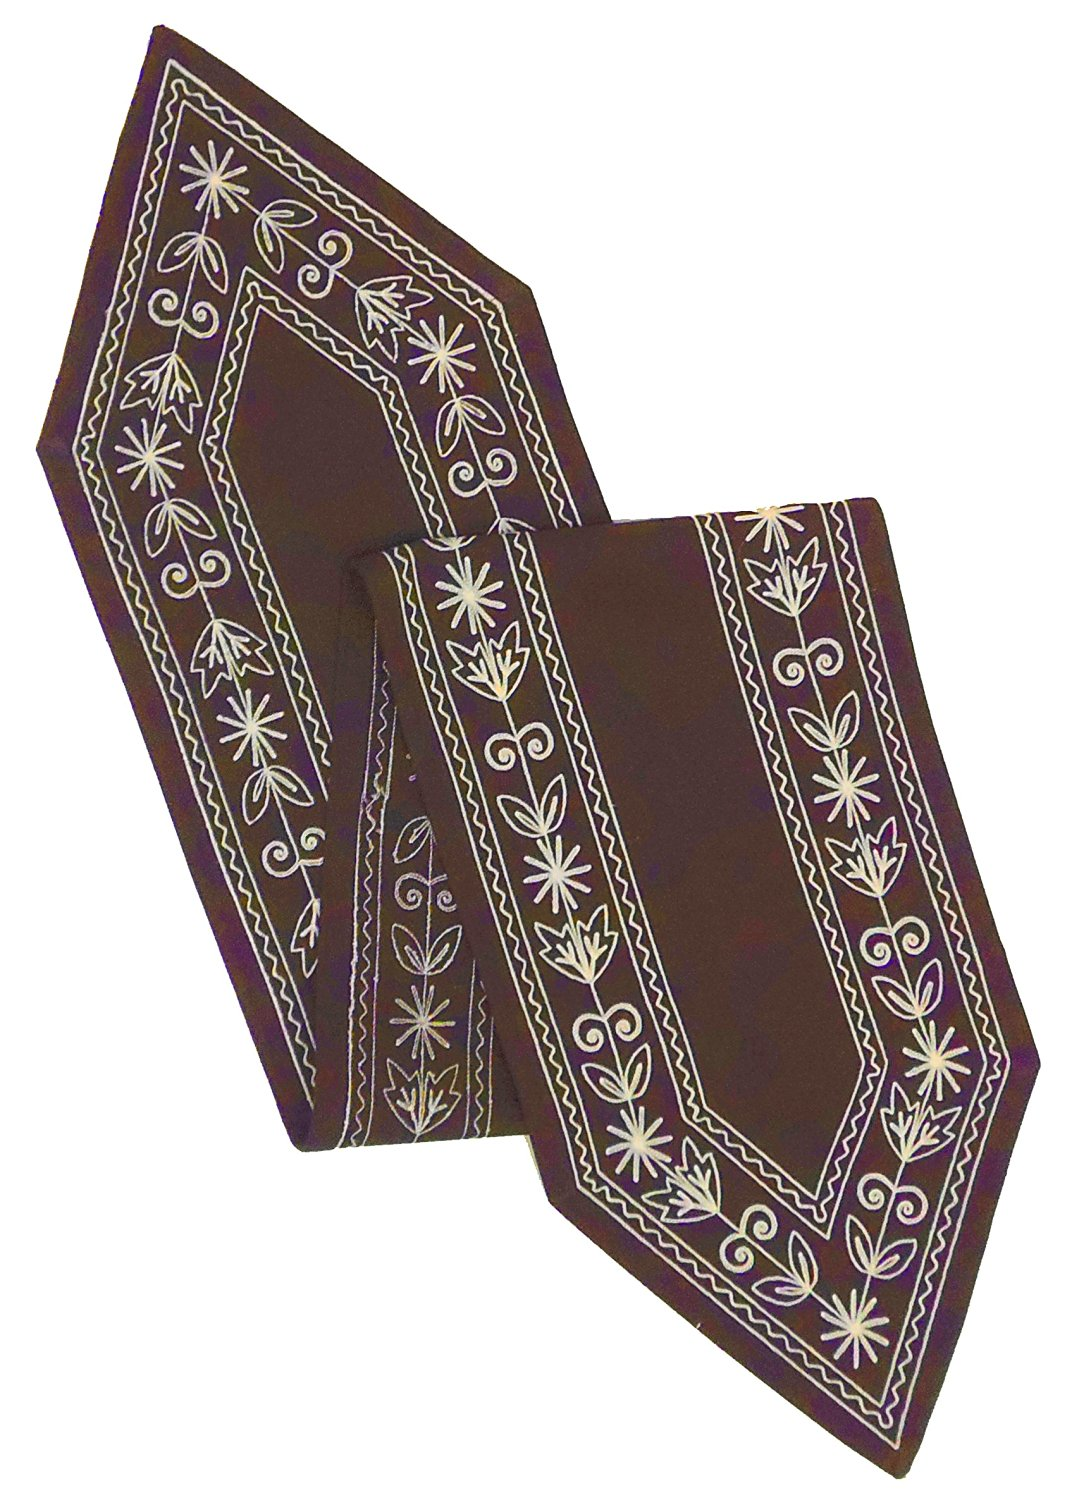 Cotton Craft - Cotton Crewel Embroidery Table Runner - Chocolate - 13x72 Inches - Heavy Duty 100% Cotton Canvas fabric - These beautifully textured and hand crafted table linens are lovingly hand embroidered by skilled artisans - Easy Care Machine Wash